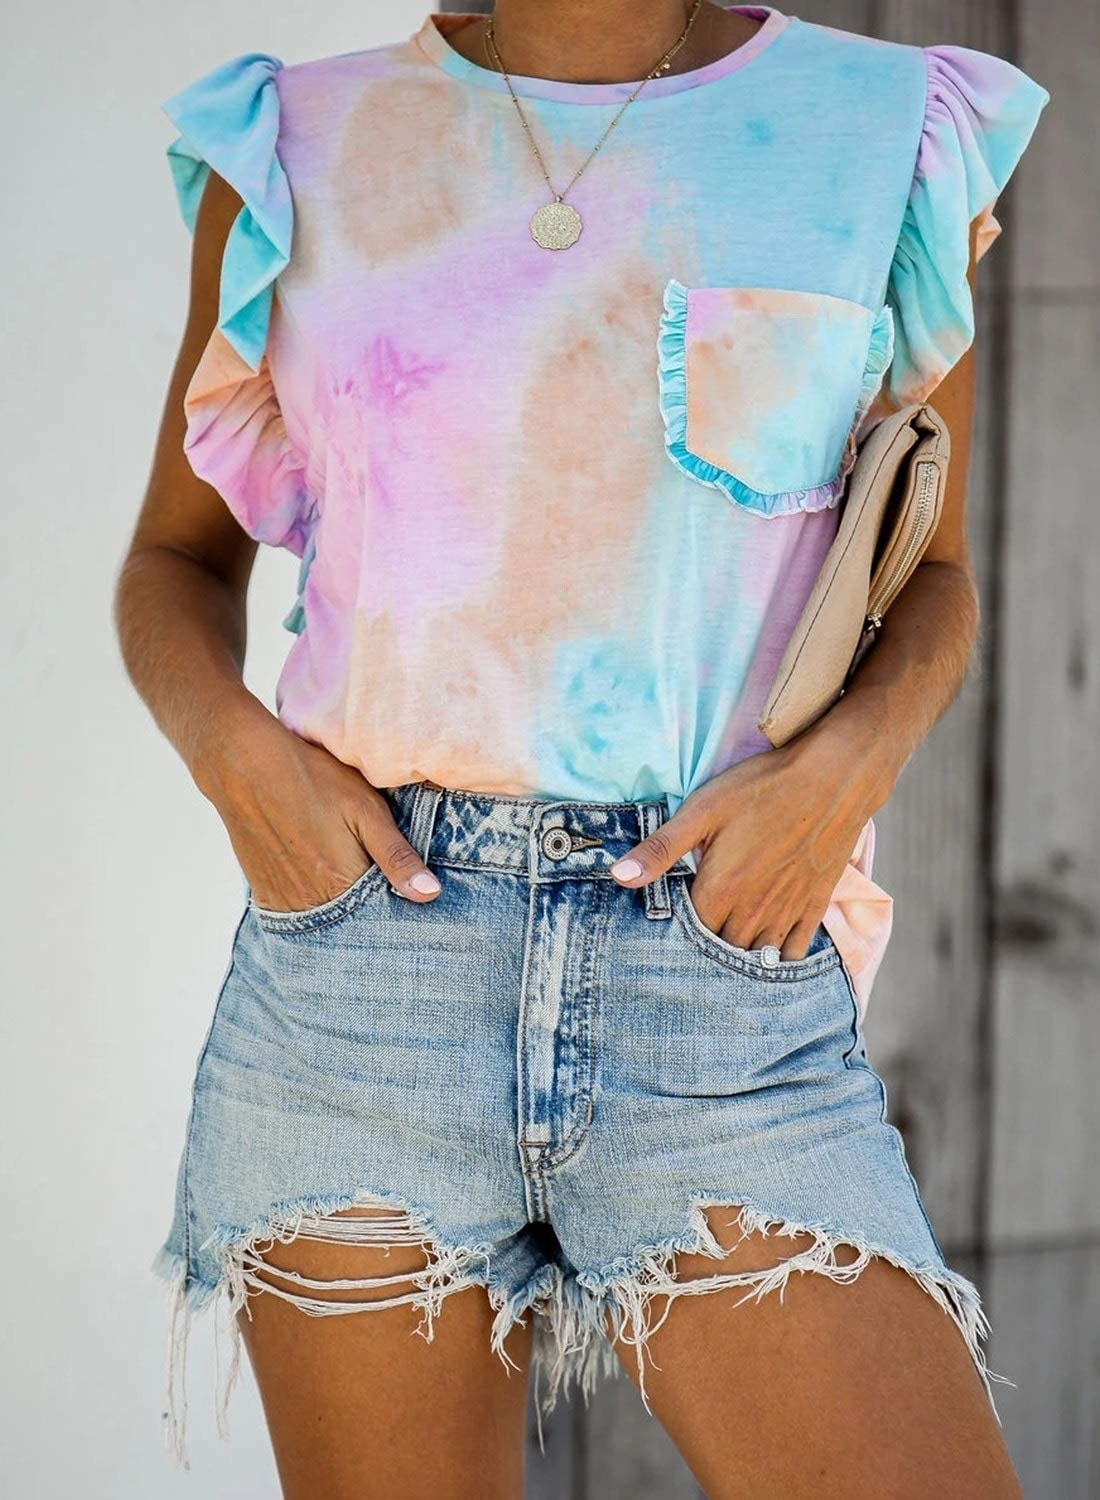 A closeup of a model wearing the tie-dye ruffle tank top